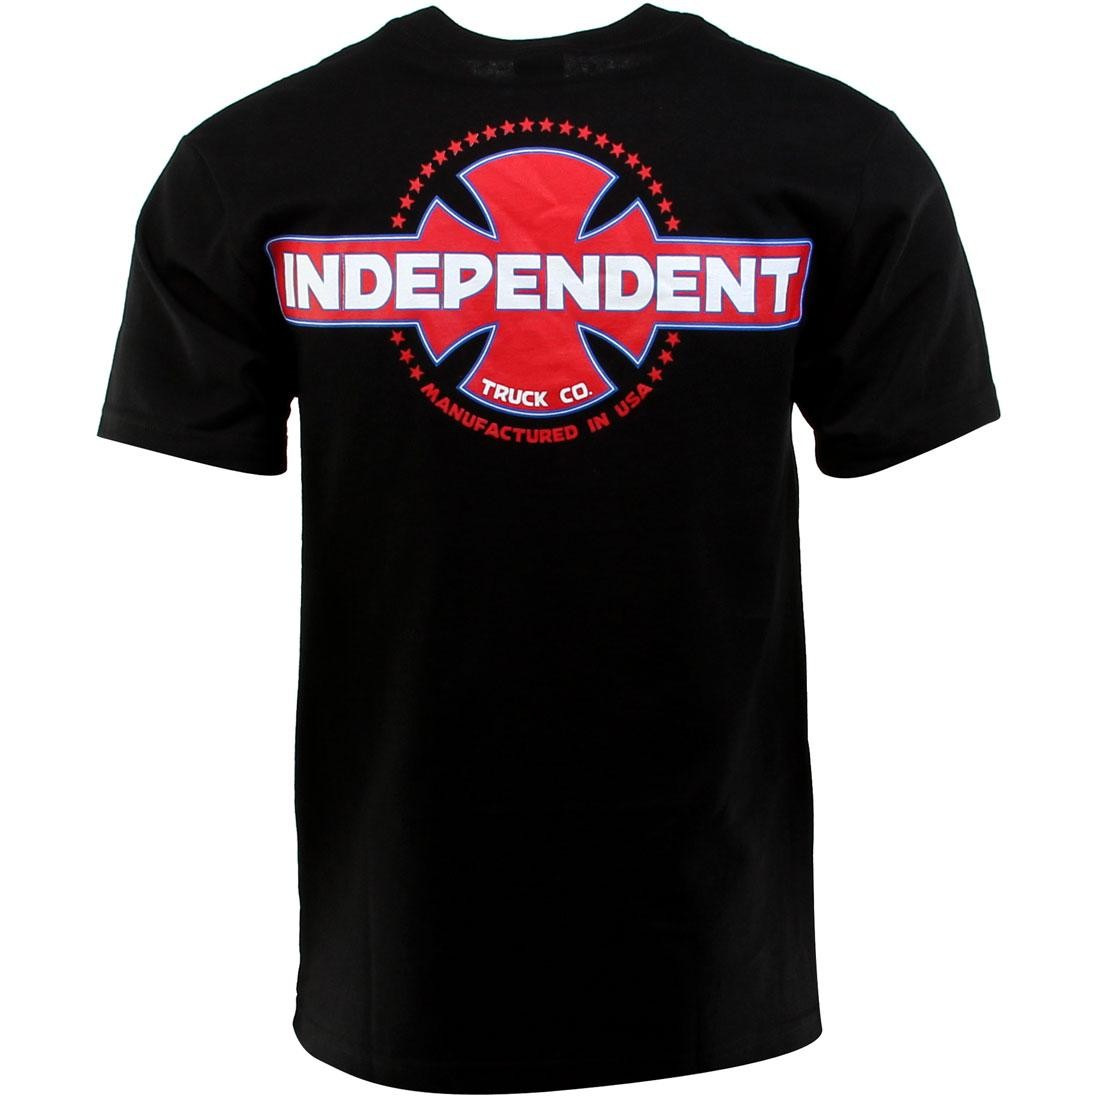 Independent MFG USA Regular Tee (black)